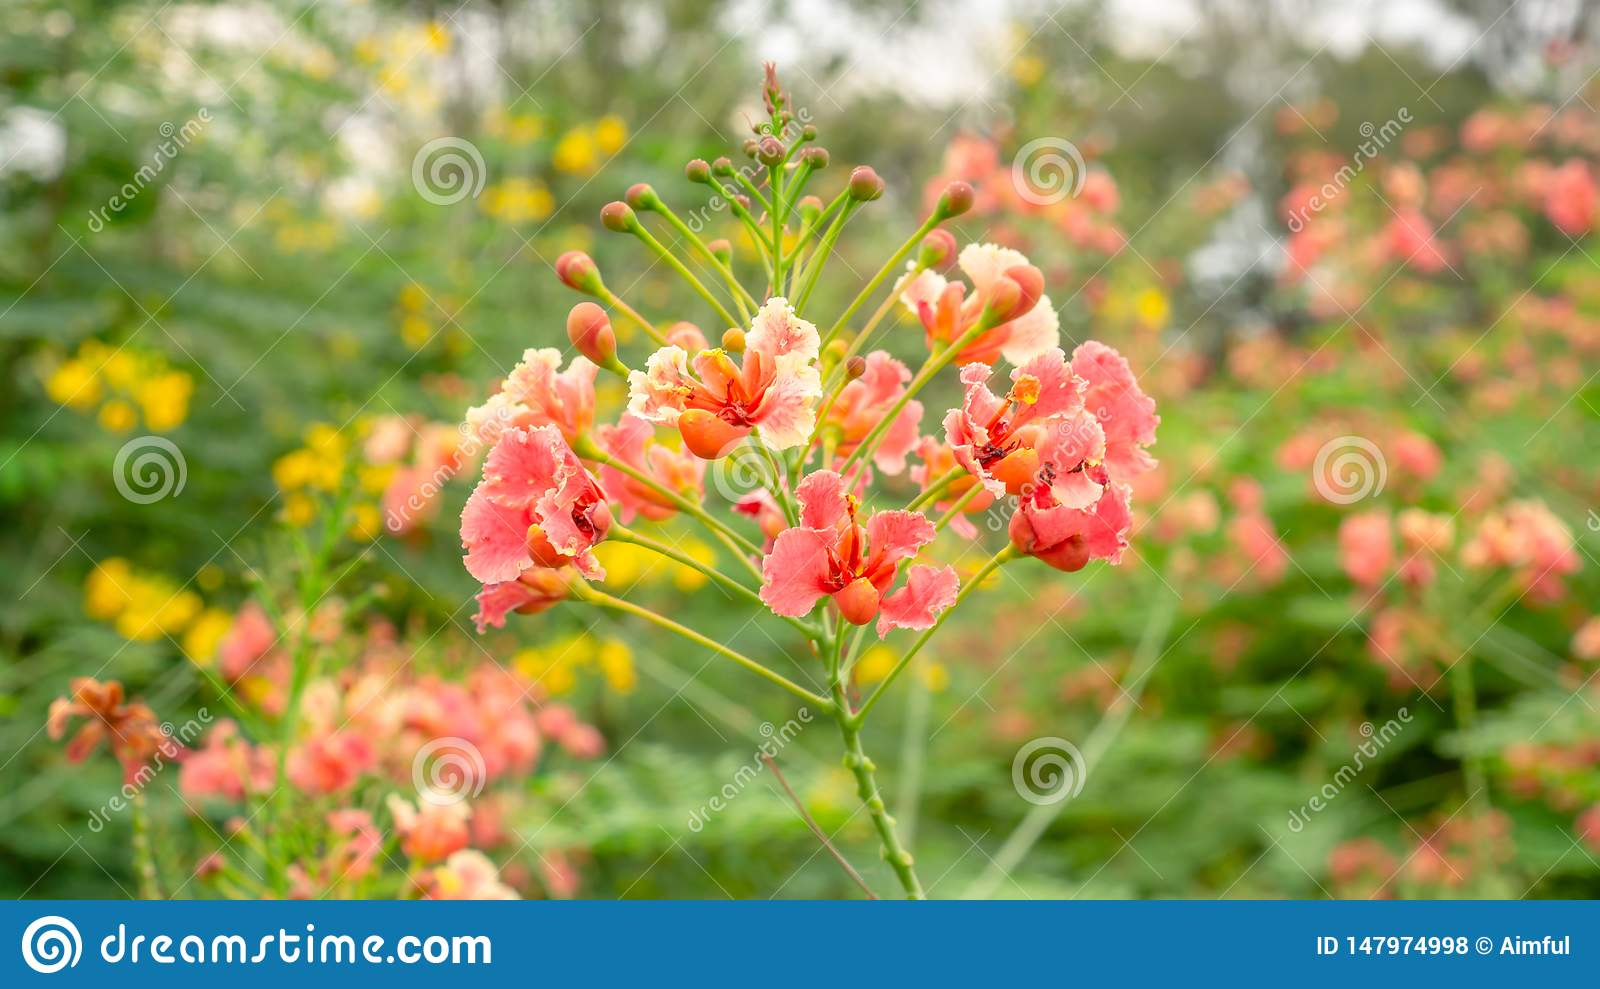 Bunch of orange petals Peacock`s crest know as Pride of barbados or Flower fecne blooming on green leaves blurred background in a